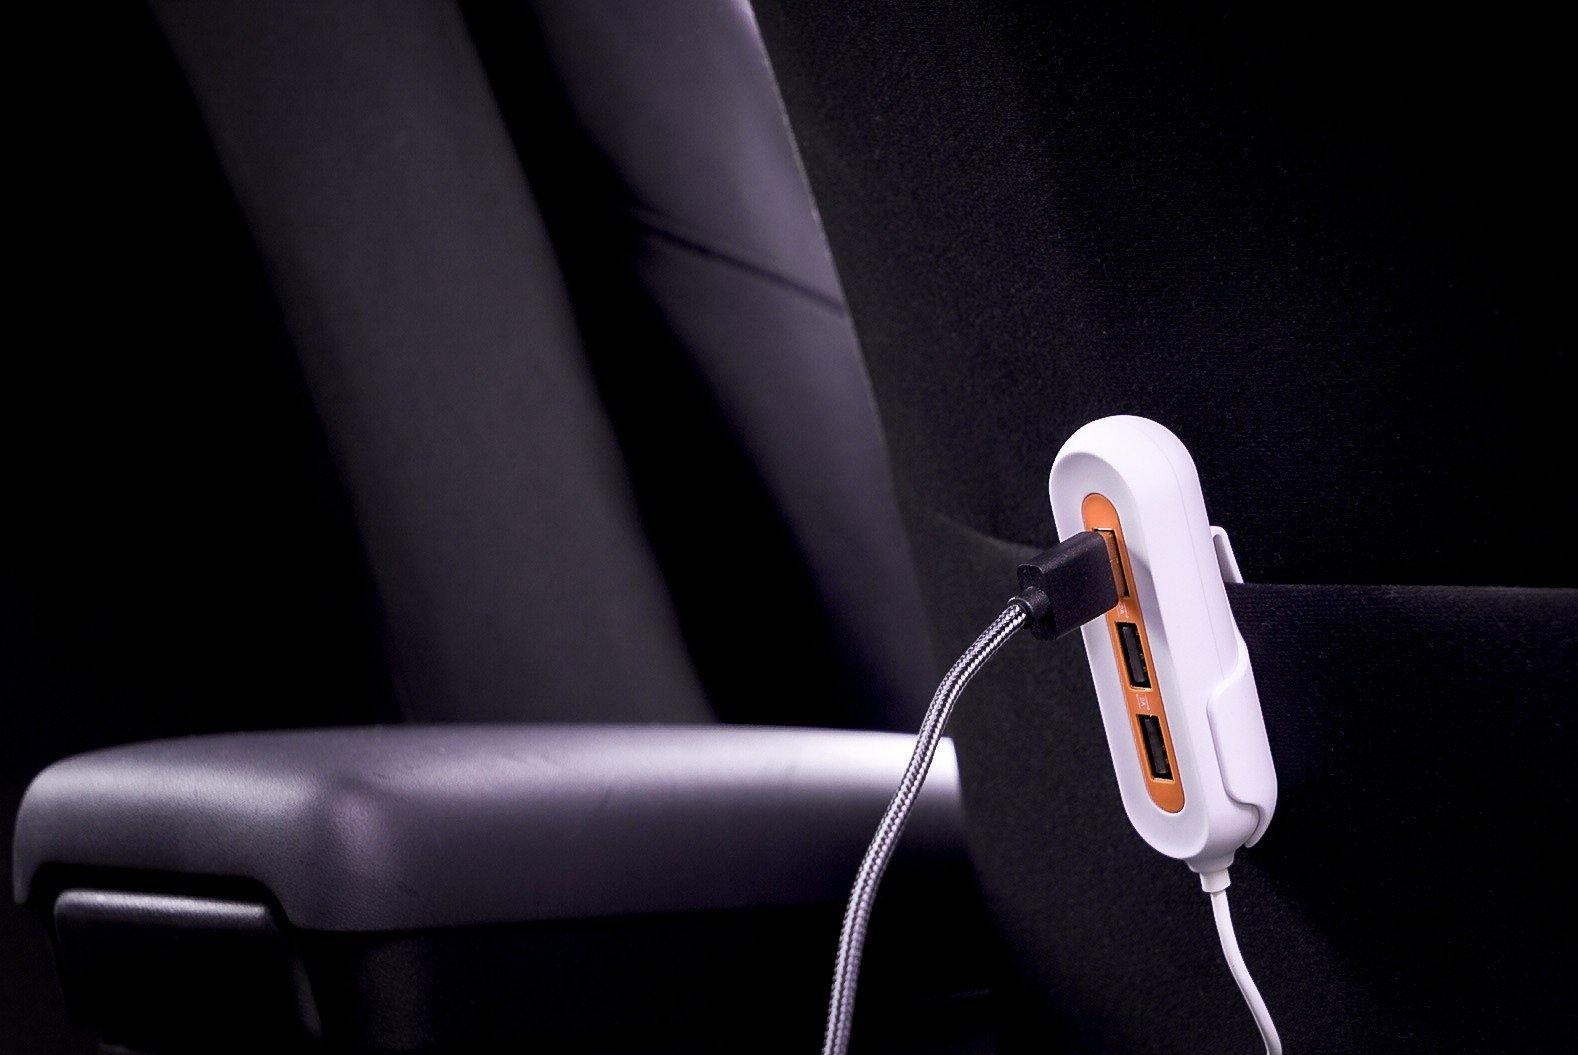 X5 Car Charger with 5 USB Ports - Orange